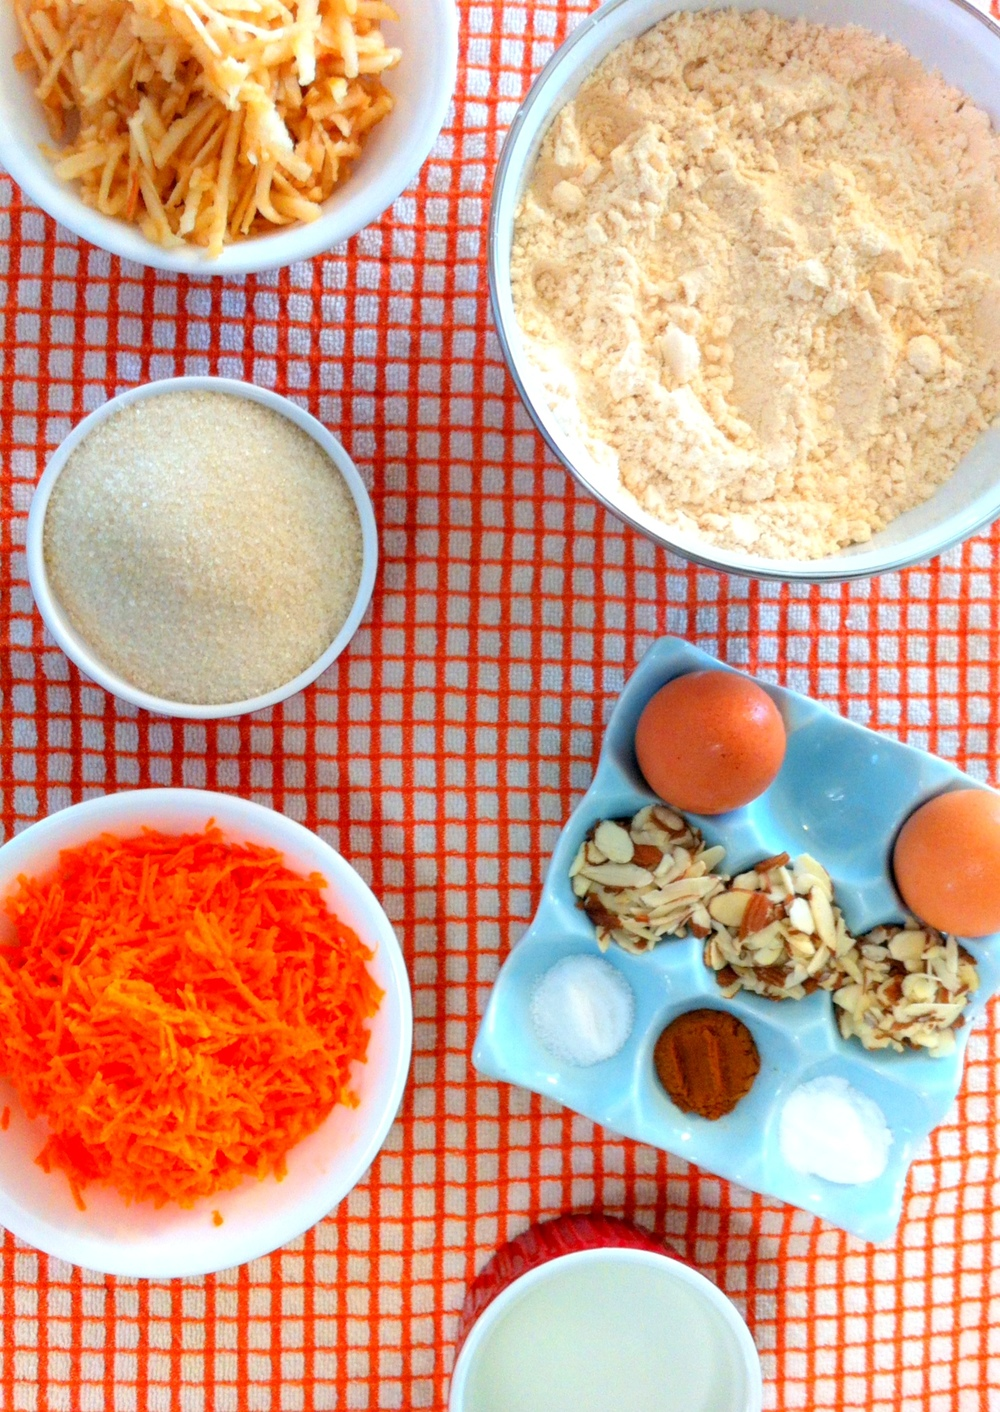 Carrot Apple Muffin Ingredients